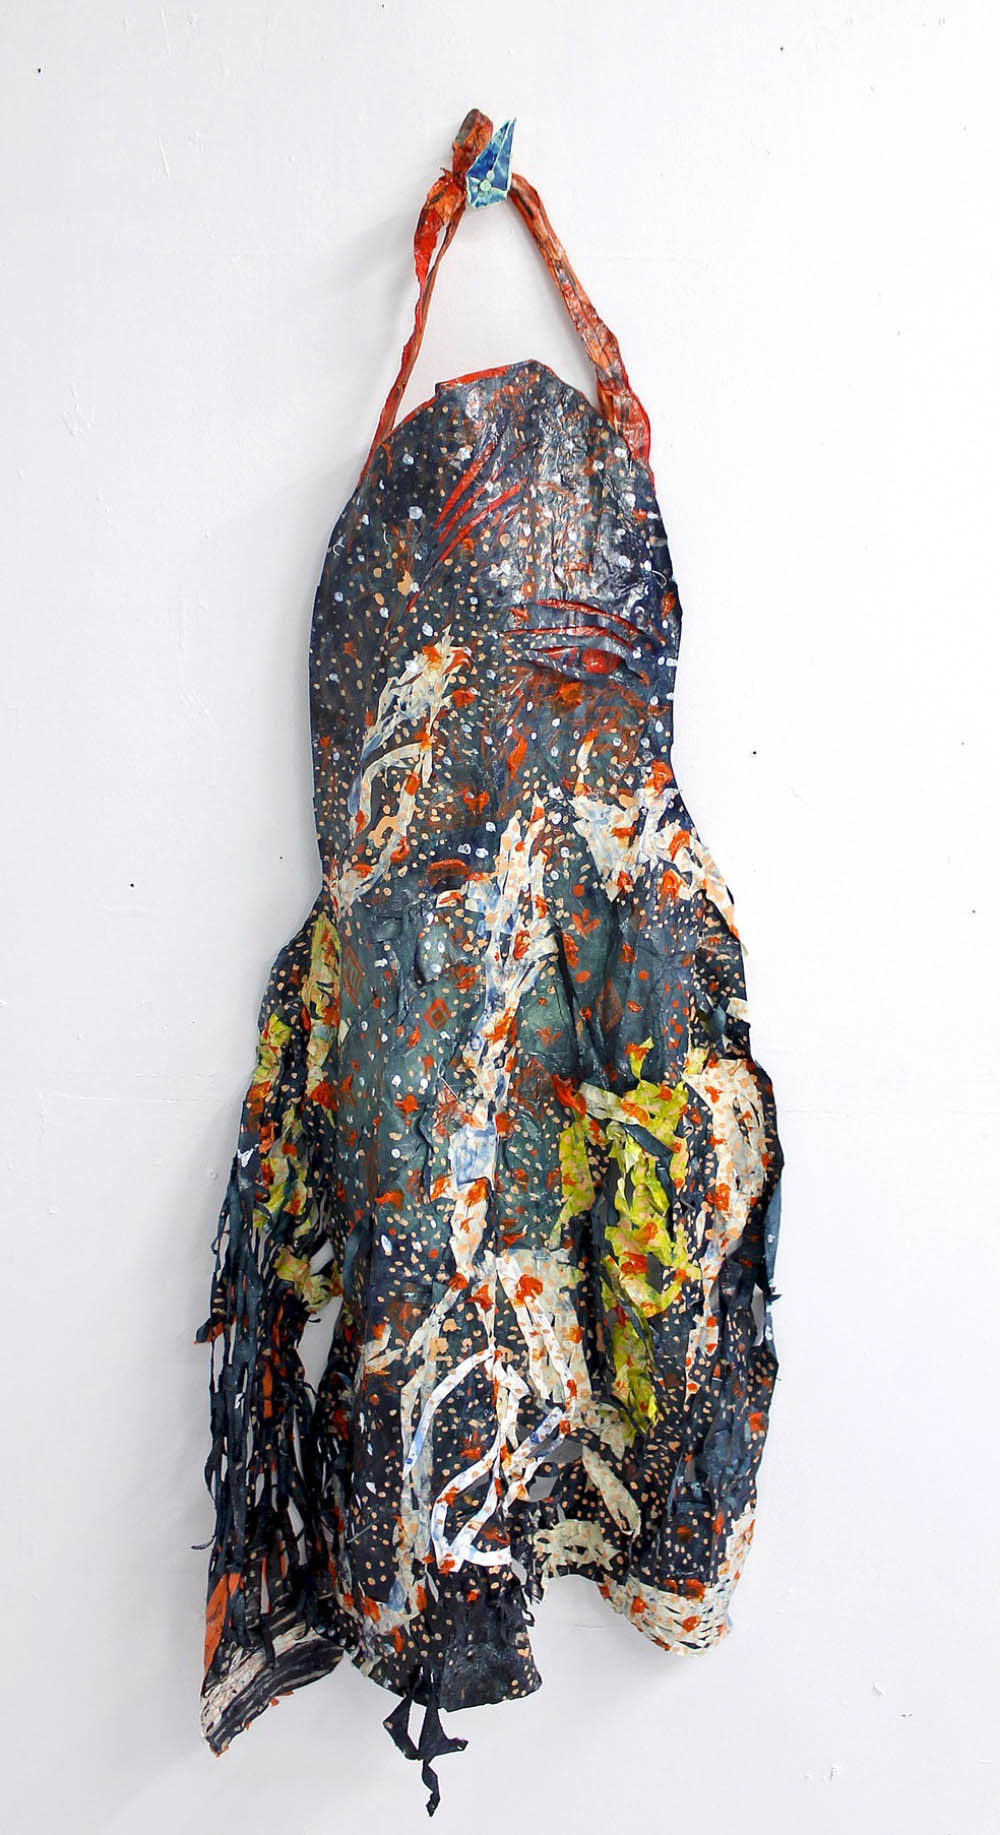 Sweatshirt, 2014, Acrylic, Ink and Fabric Dye on Paper